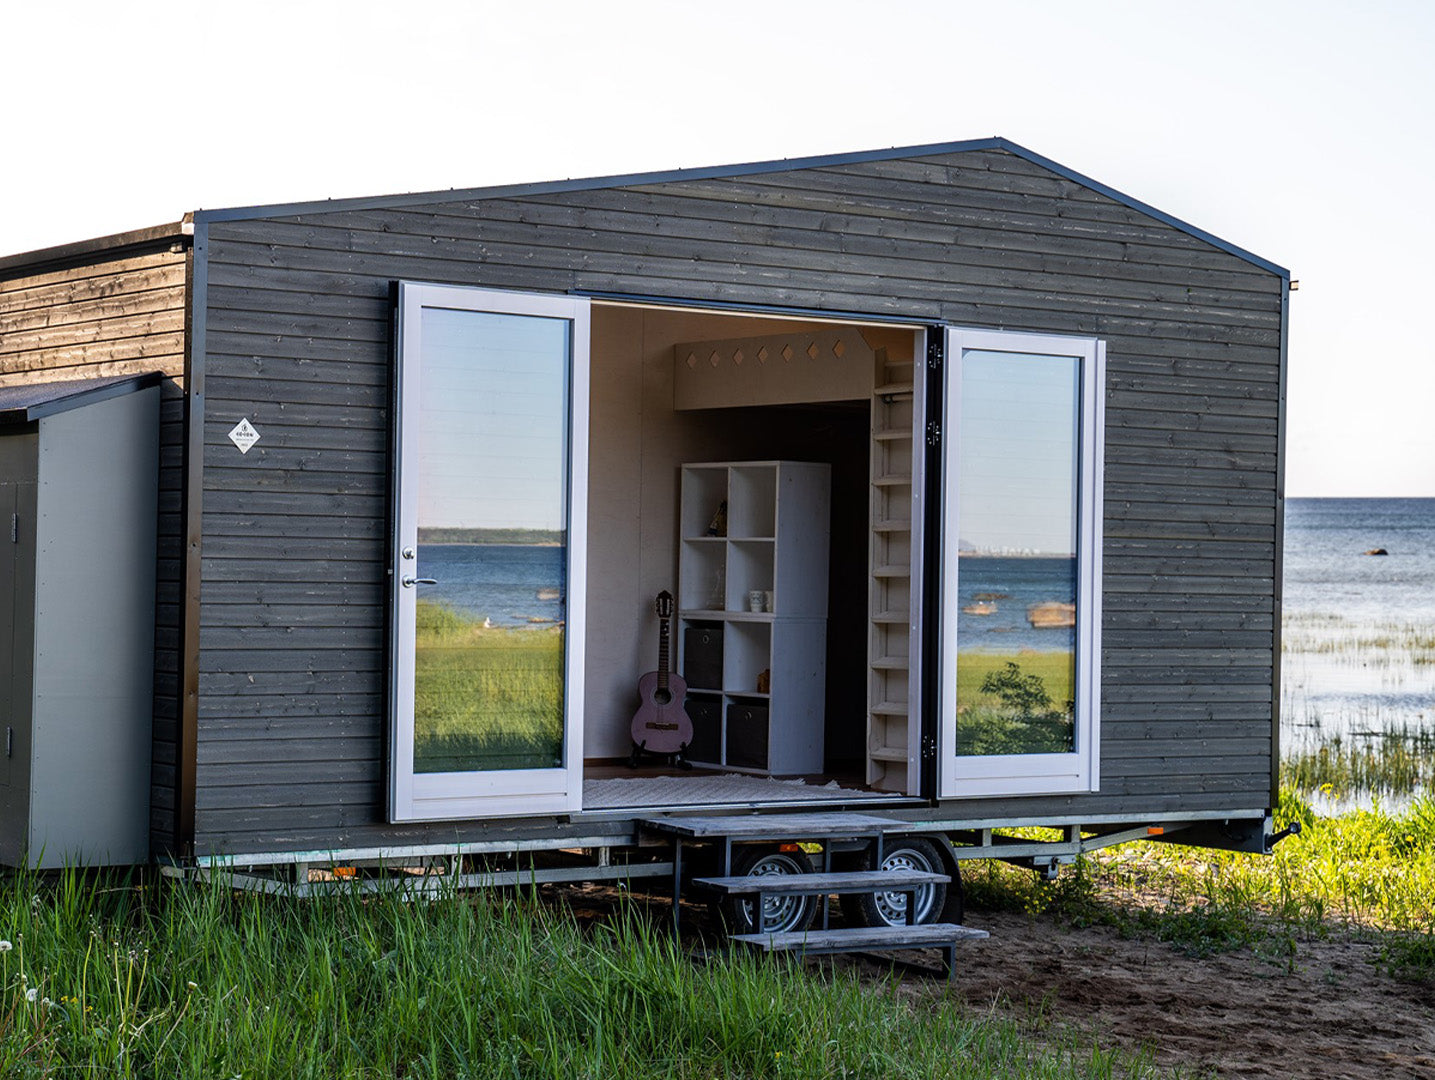 House on wheels! - explore the possibilities of a modern roadtrip